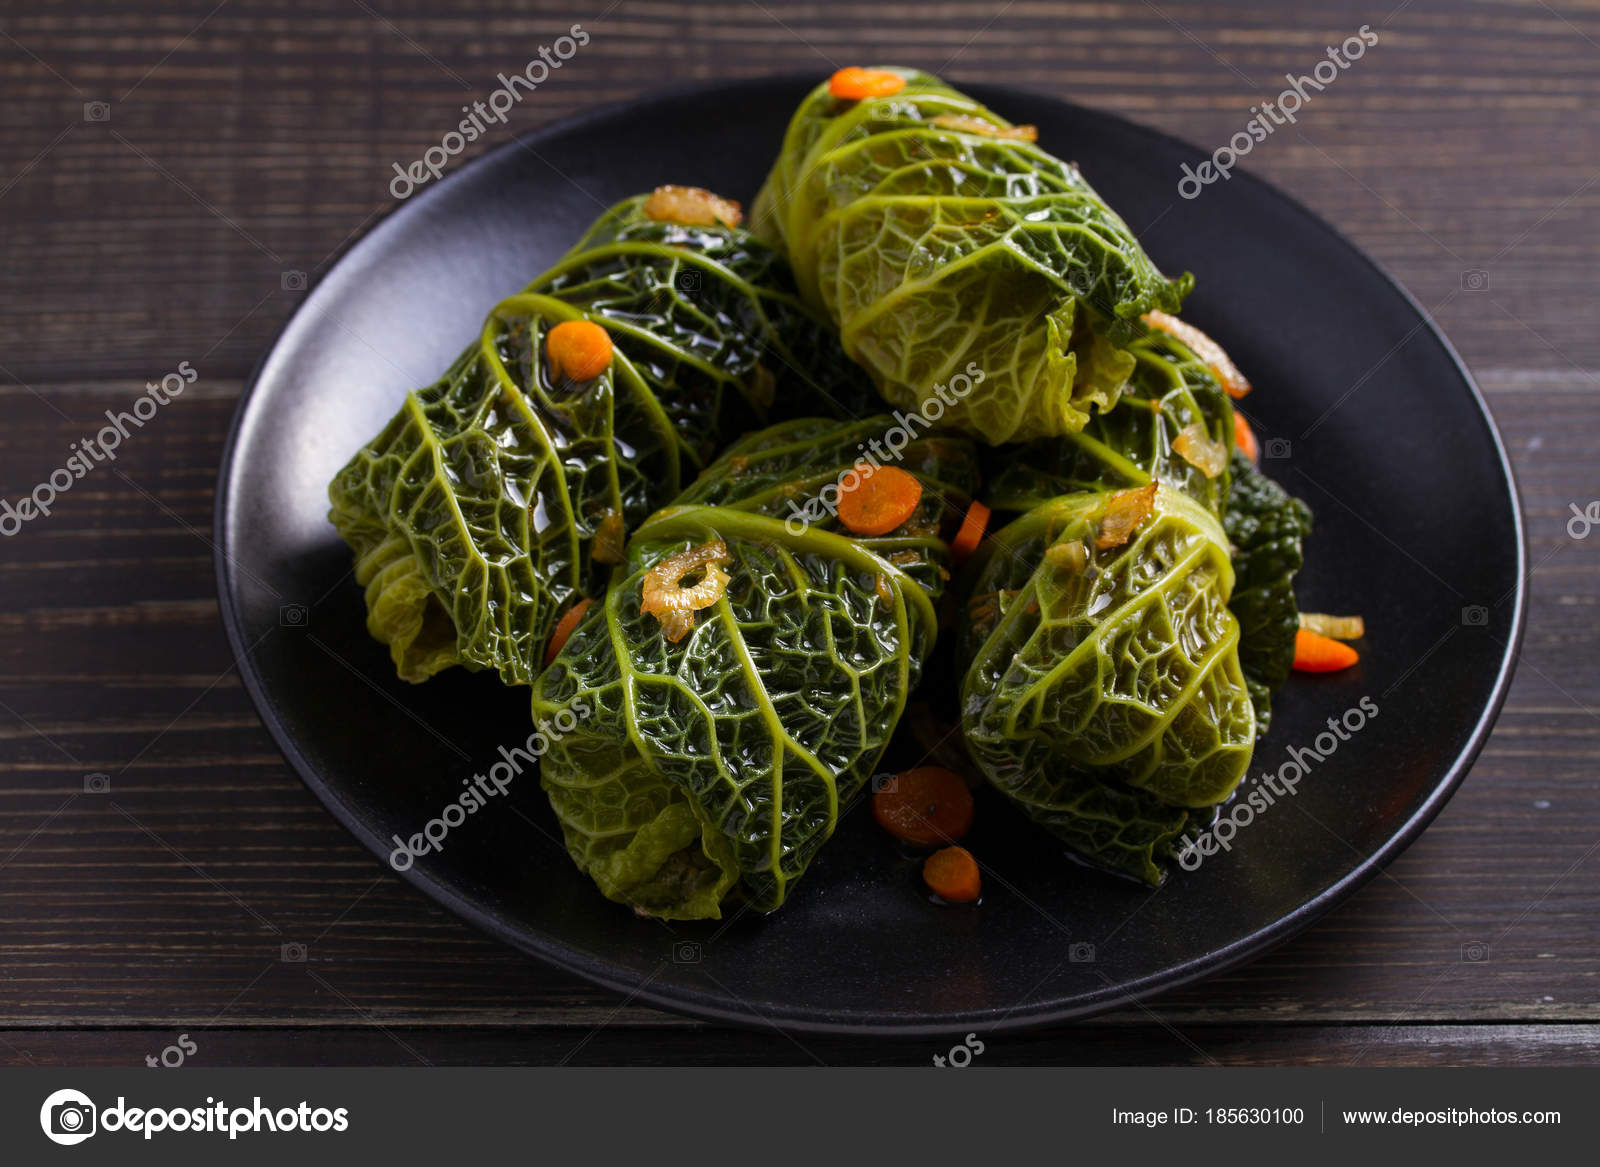 Savoy Cabbage Rolls Meat Rice Vegetables Stuffed Savoy Cabbage Leaves Stock Photo C Skylinefree 185630100